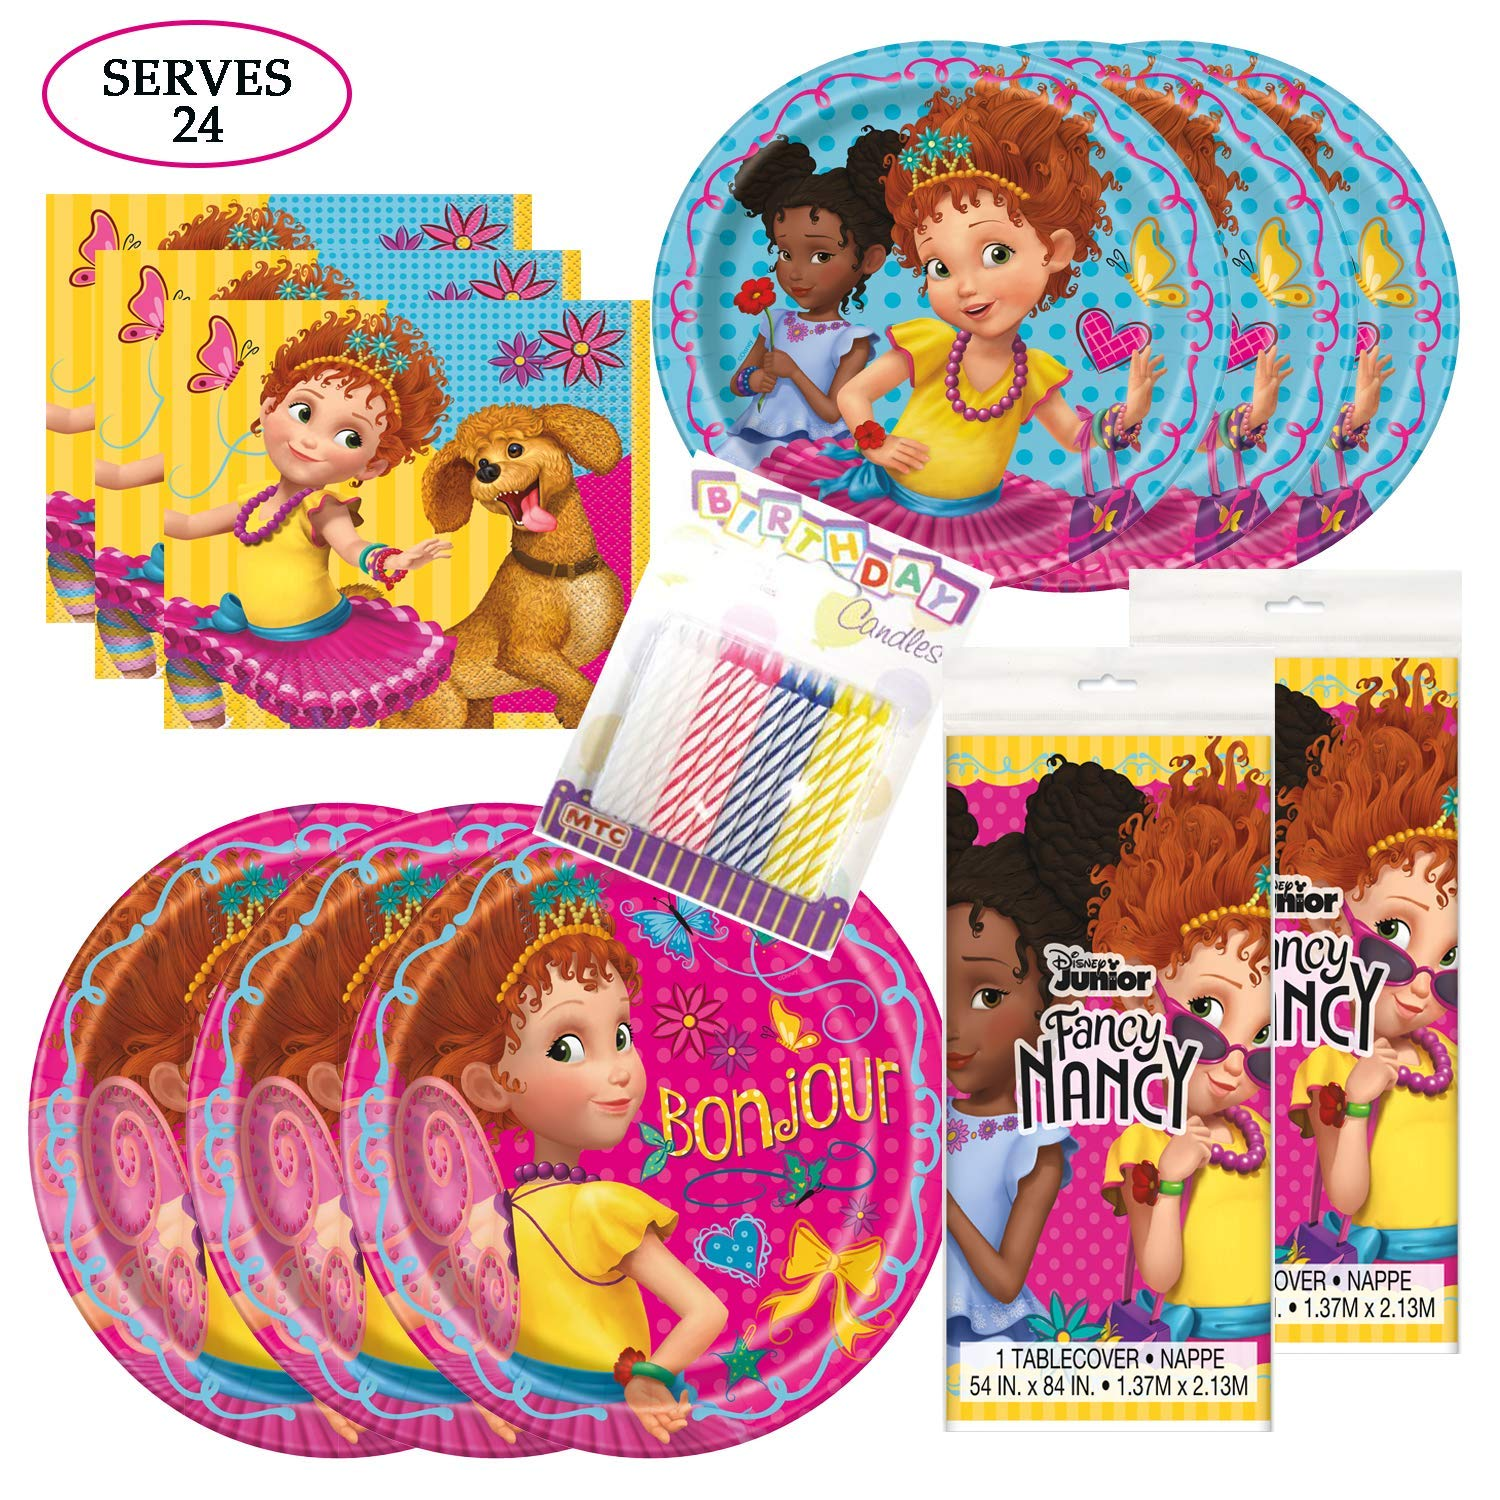 Fancy Nancy Themed Party Pack - Includes 24 9'' and 24 7'' Paper Plates, 48 Luncheon Napkins, 2 Matching Table Cloth, Plus 24 Birthday Candles - Serves 24